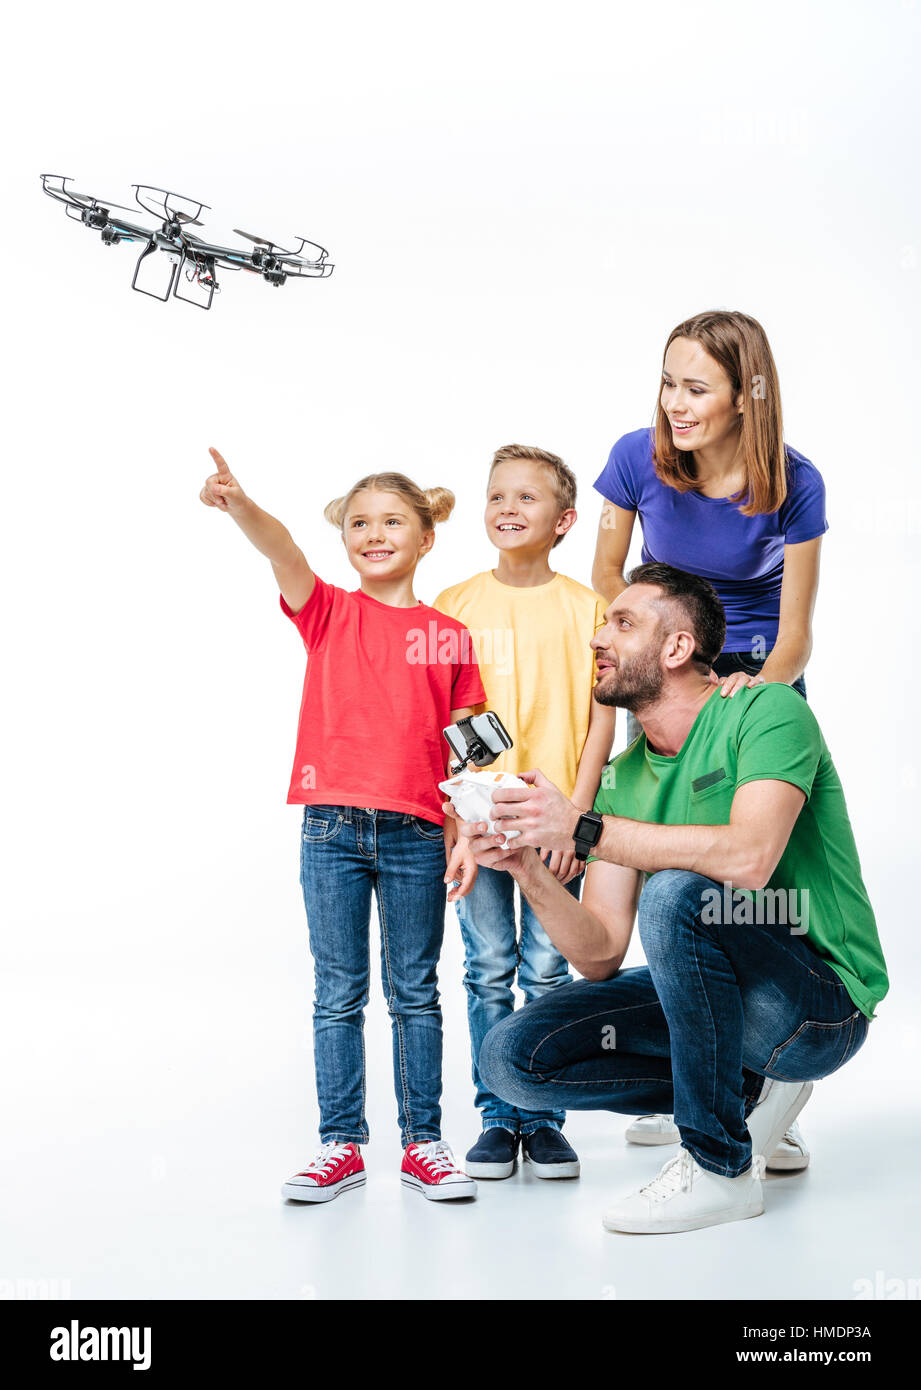 Kids using flying hexacopter drone Stock Photo: 133068414